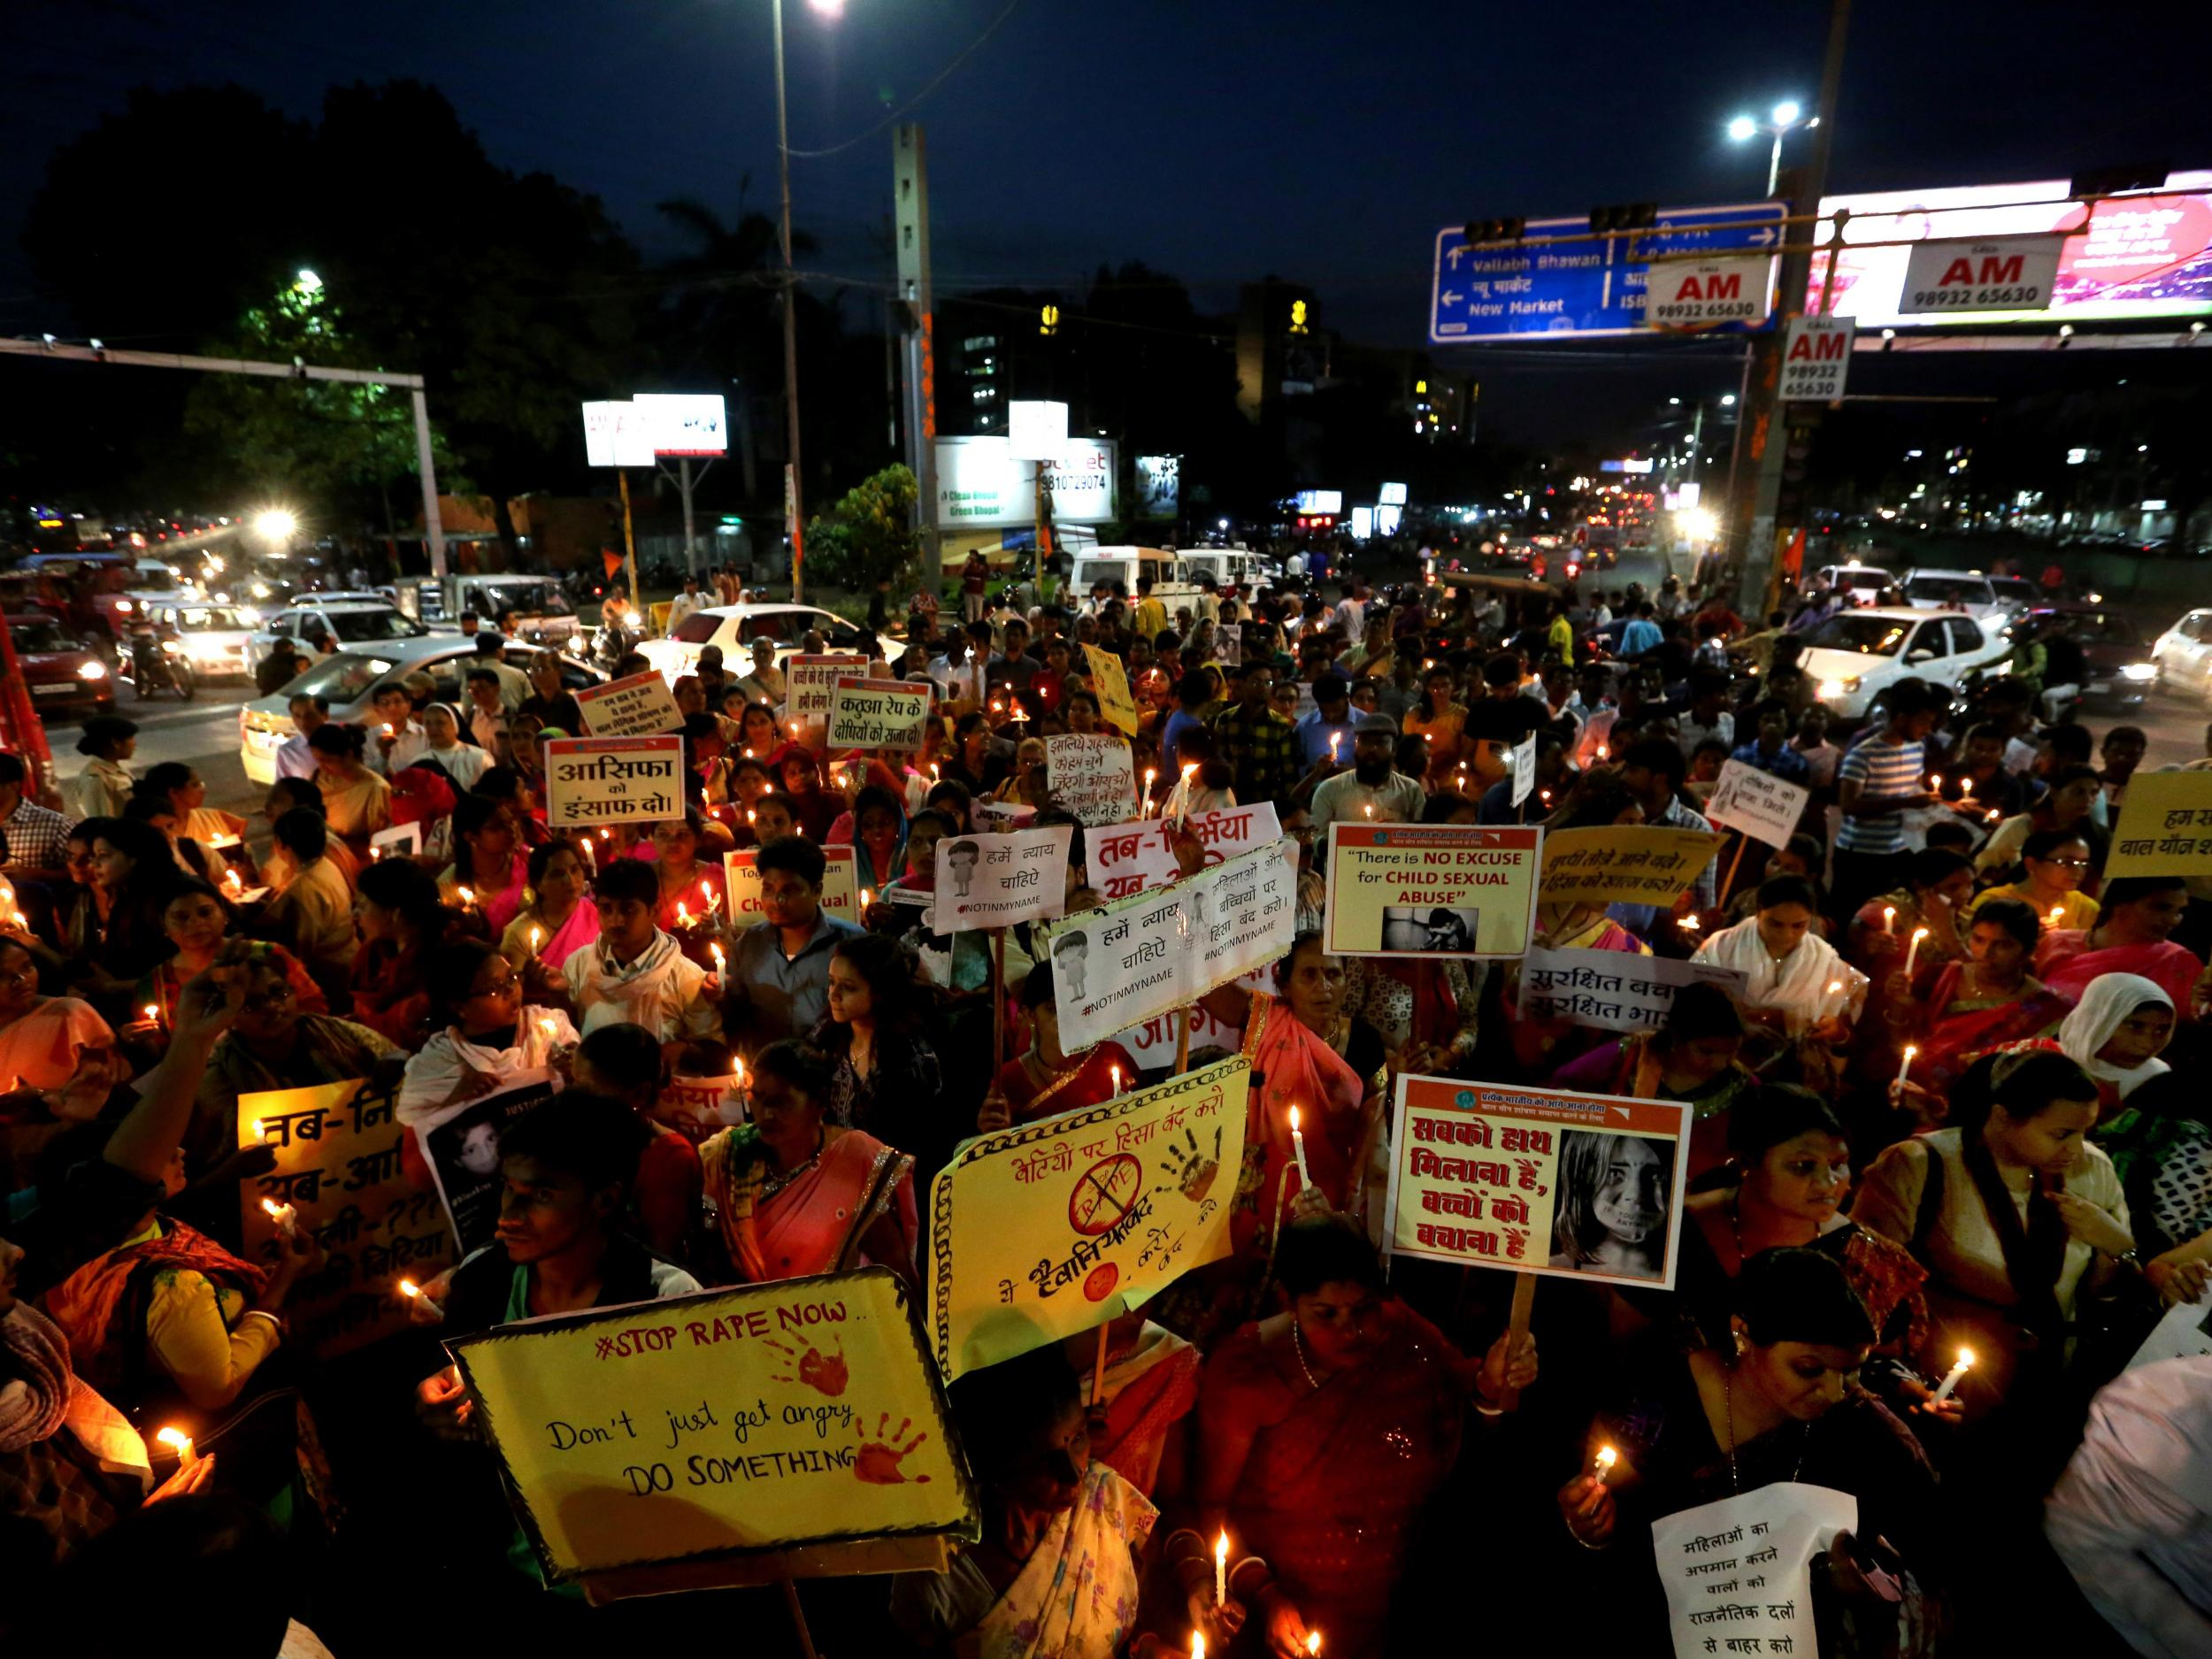 Teenager raped and set on fire in India, days after another girl burnt to death